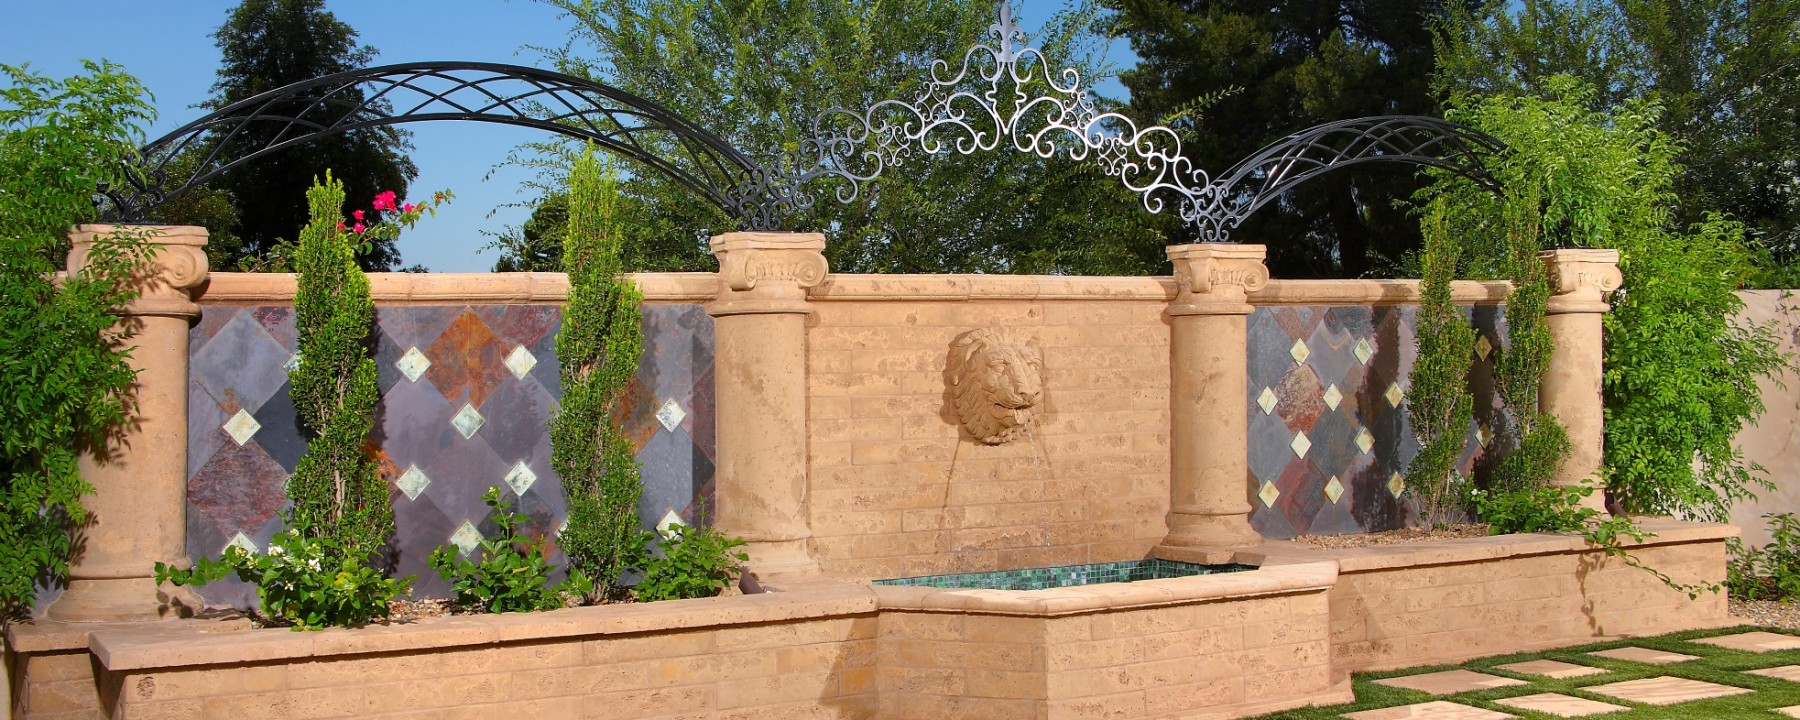 Mesa Precast Products for Architectural Solutions | Home Decor | Office Decor | Hardscape, Landscaping Design | Consistent Color Matching, Custom Finishes